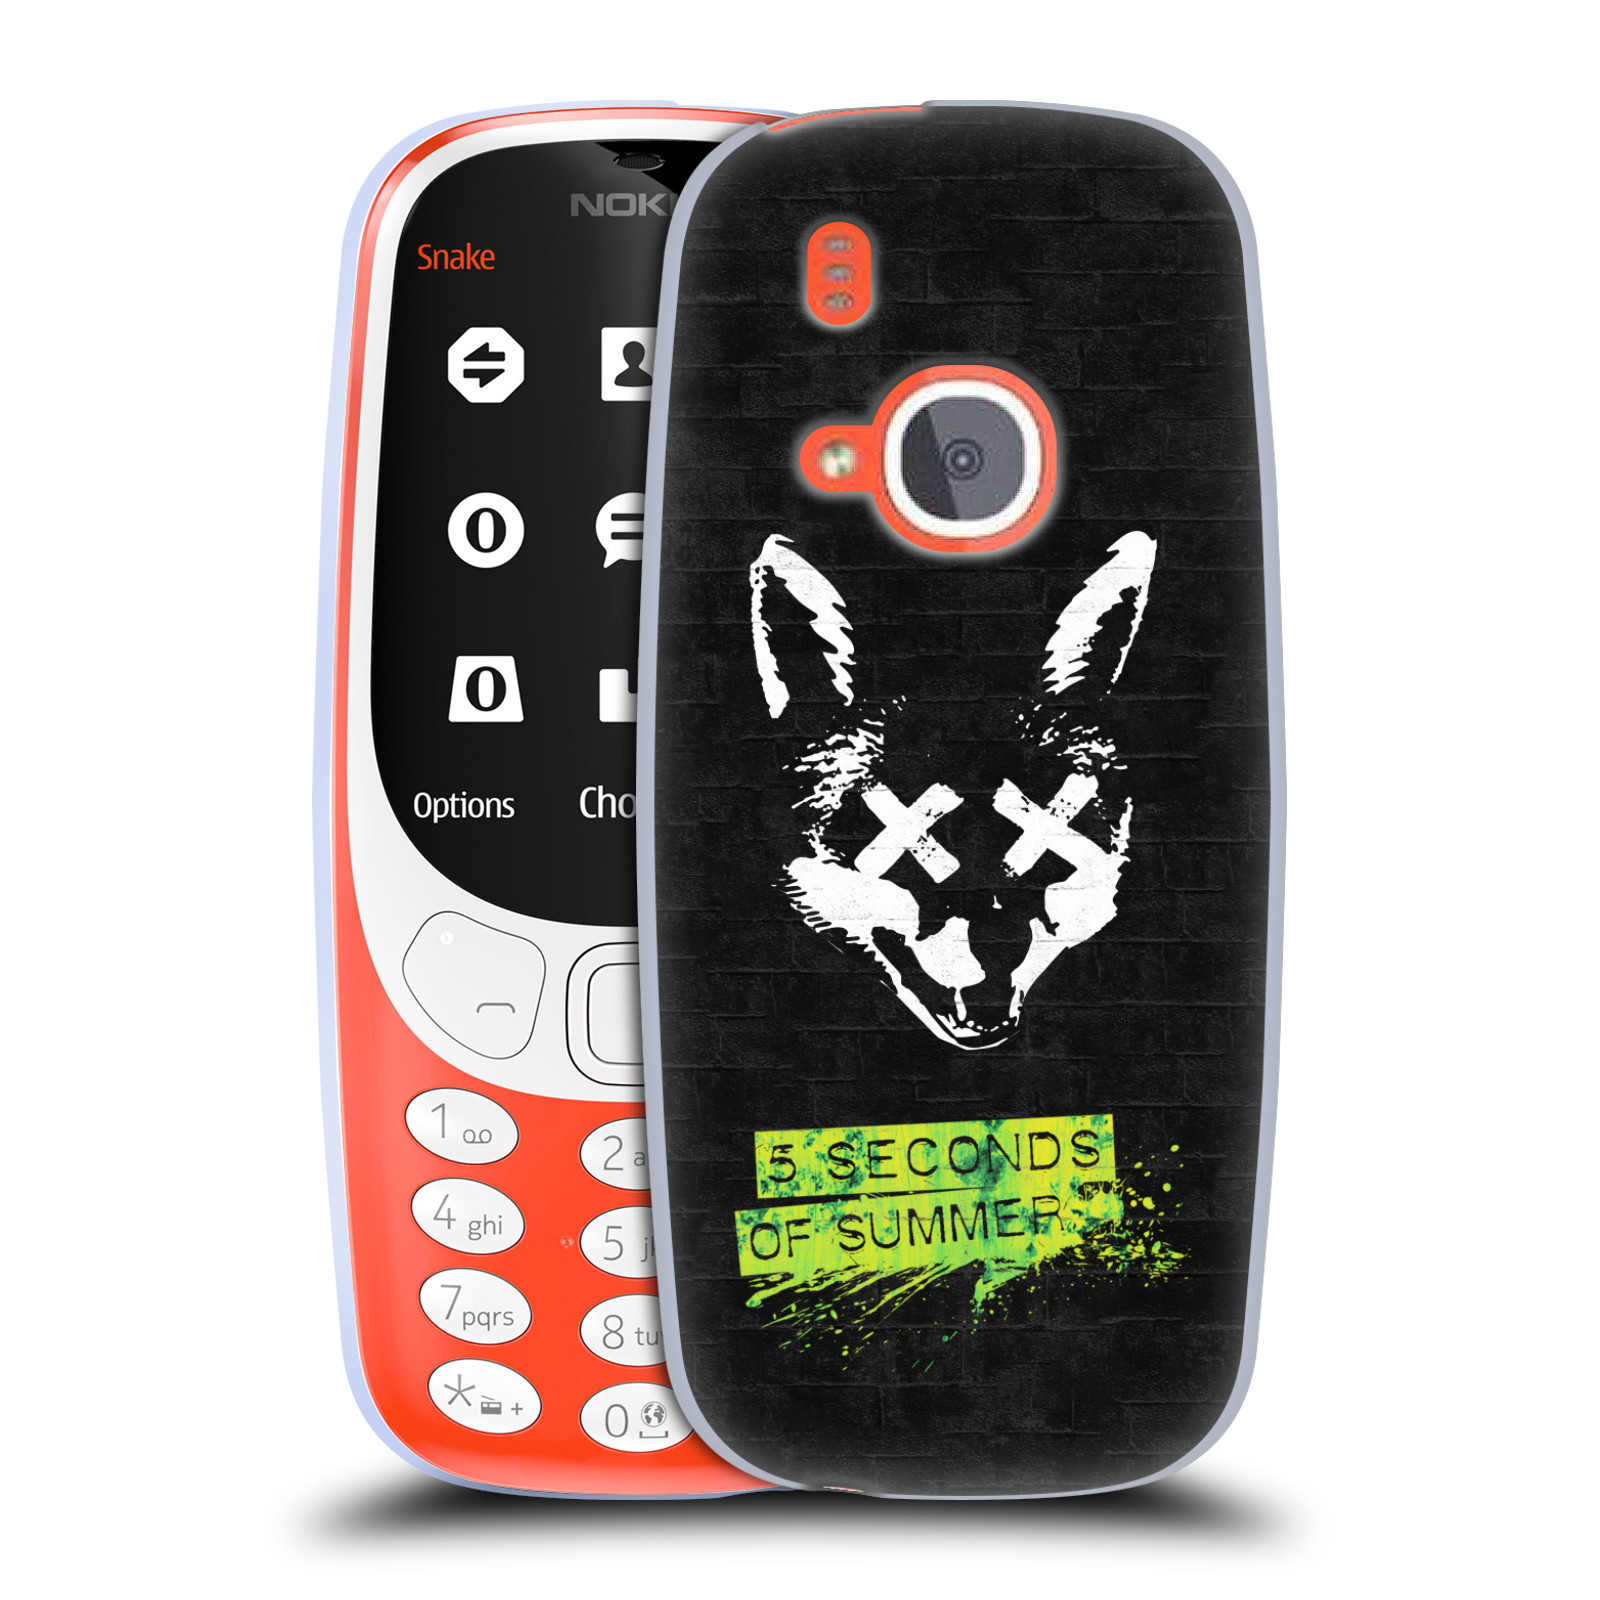 Silikonové pouzdro na mobil Nokia 3310 - Head Case - 5 Seconds of Summer - Fox